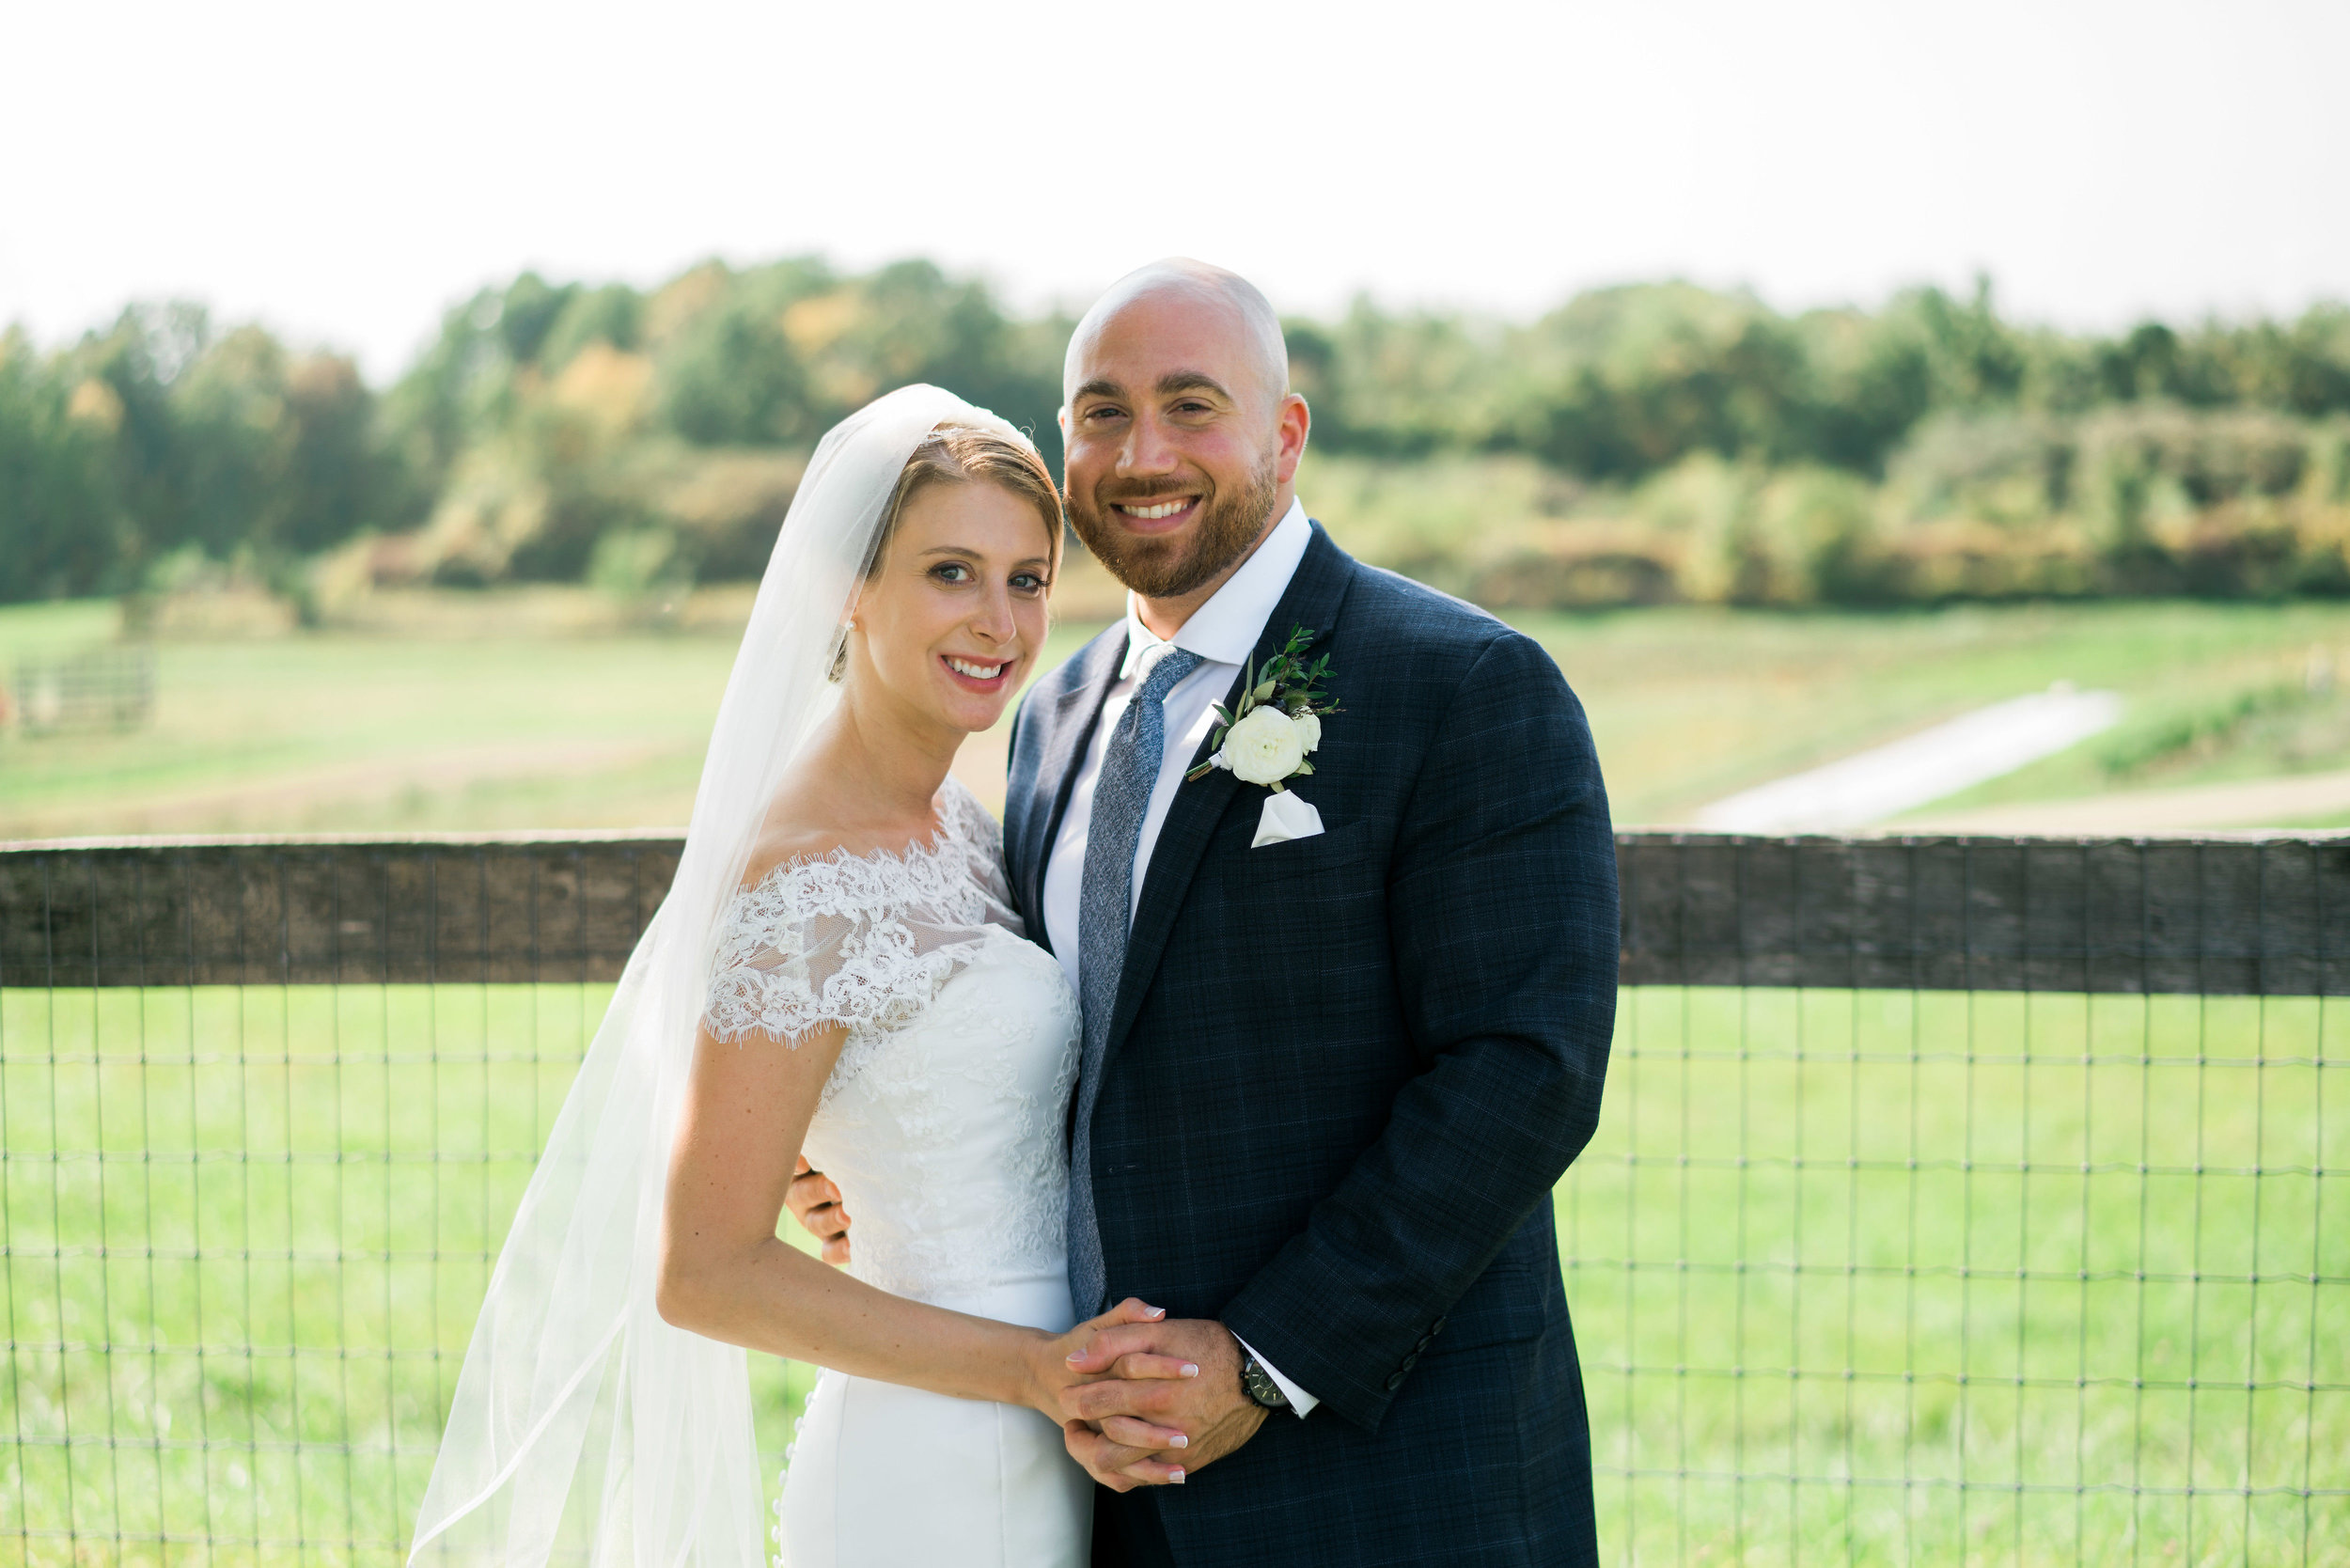 Candice_and_Chris_Wedding_Photography_by_Stefan_Ludwig_in_Albany_NY_259.jpg